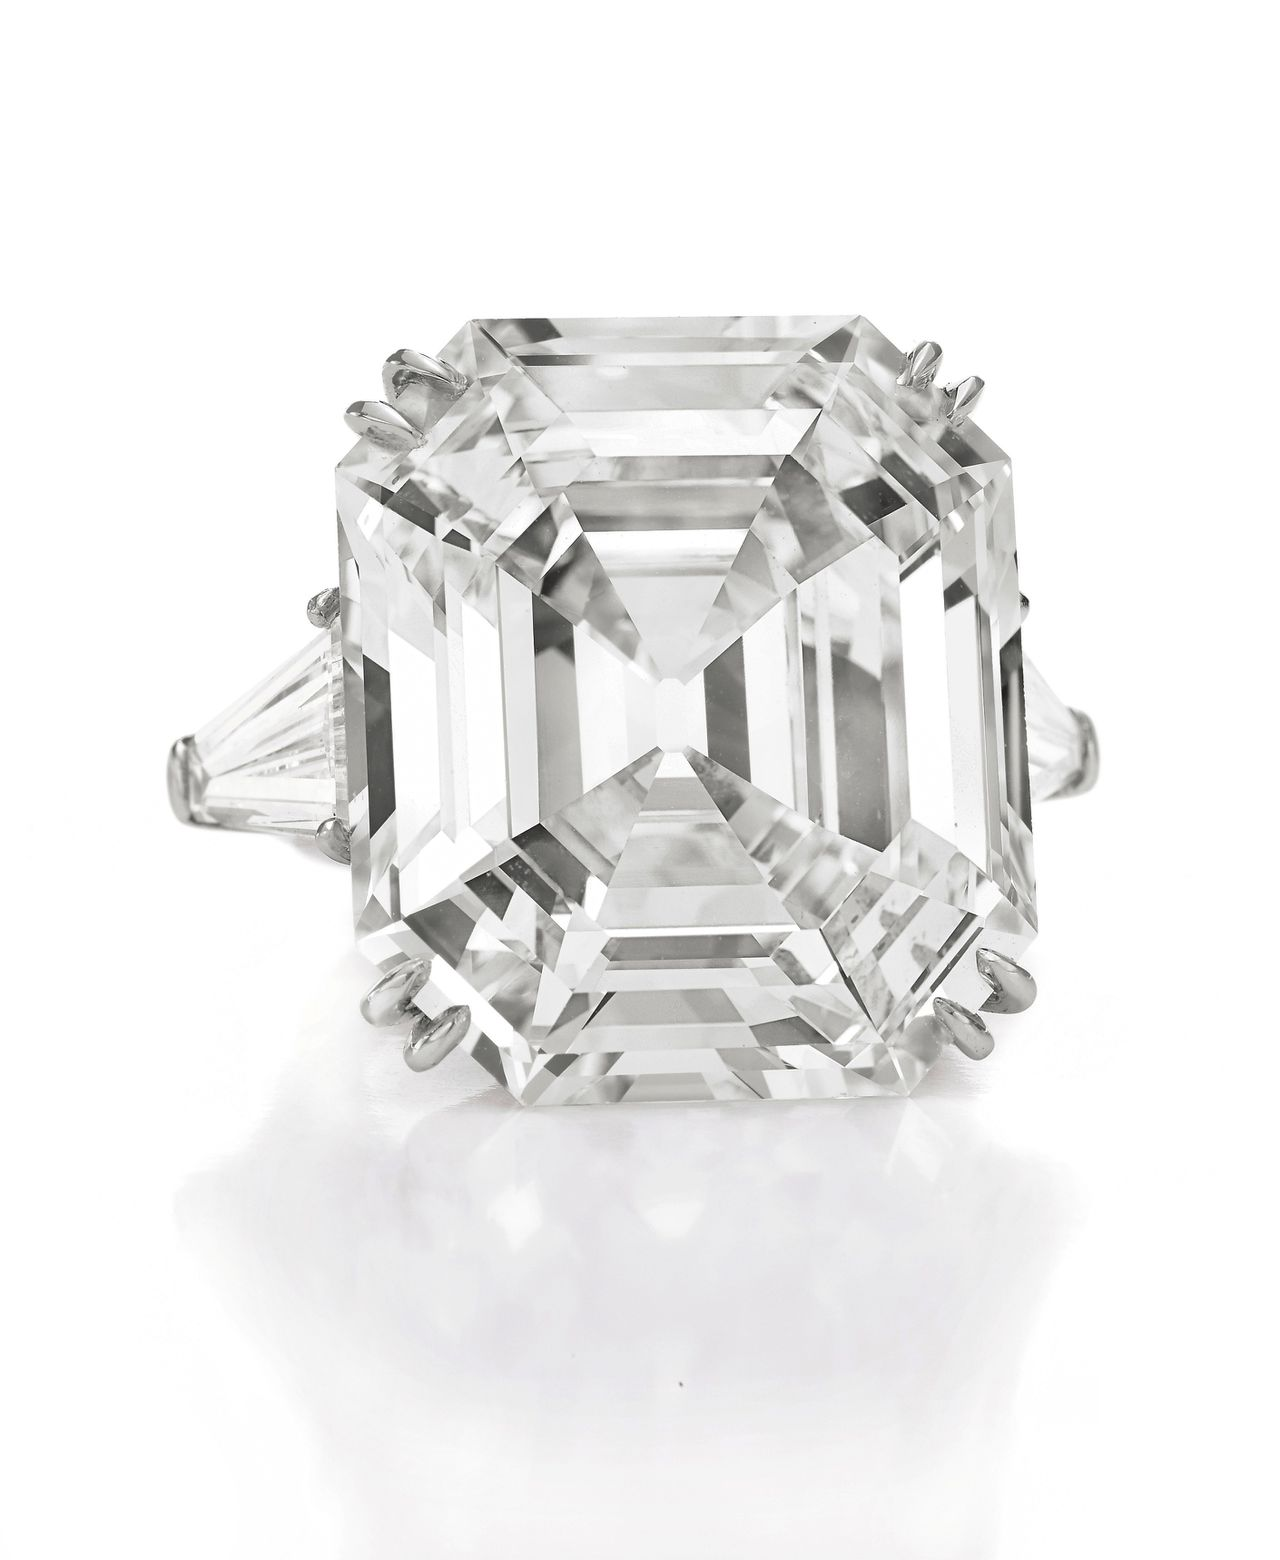 An undated handout photograph of 'The Elizabeth Taylor Diamond', a 33.19 carat diamond ring which is part of the upcoming auction of the late actress' jewelry, clothing, art and memorabilia at Christie's Auction house in New York City, December 1, 2011. The iconic diamond ring that was a gift from Taylor's storied romance with Richard Burton is estimated to sell for $2.5 million to $3.5 million. The Collection of Elizabeth Taylor auction will take place December 13, 2011 at Christie's. REUTERS/Handout (UNITED STATES BUSINESS) FOR EDITORIAL USE ONLY (ENTERTAINMENT SOCIETY) BUSINESS) FOR EDITORIAL USE ONLY NO SALES. NO ARCHIVES. FOR EDITORIAL USE ONLY. NOT FOR SALE FOR MARKETING OR ADVERTISING CAMPAIGNS. THIS IMAGE HAS BEEN SUPPLIED BY A THIRD PARTY. IT IS DISTRIBUTED, EXACTLY AS RECEIVED BY REUTERS, AS A SERVICE TO CLIENTS